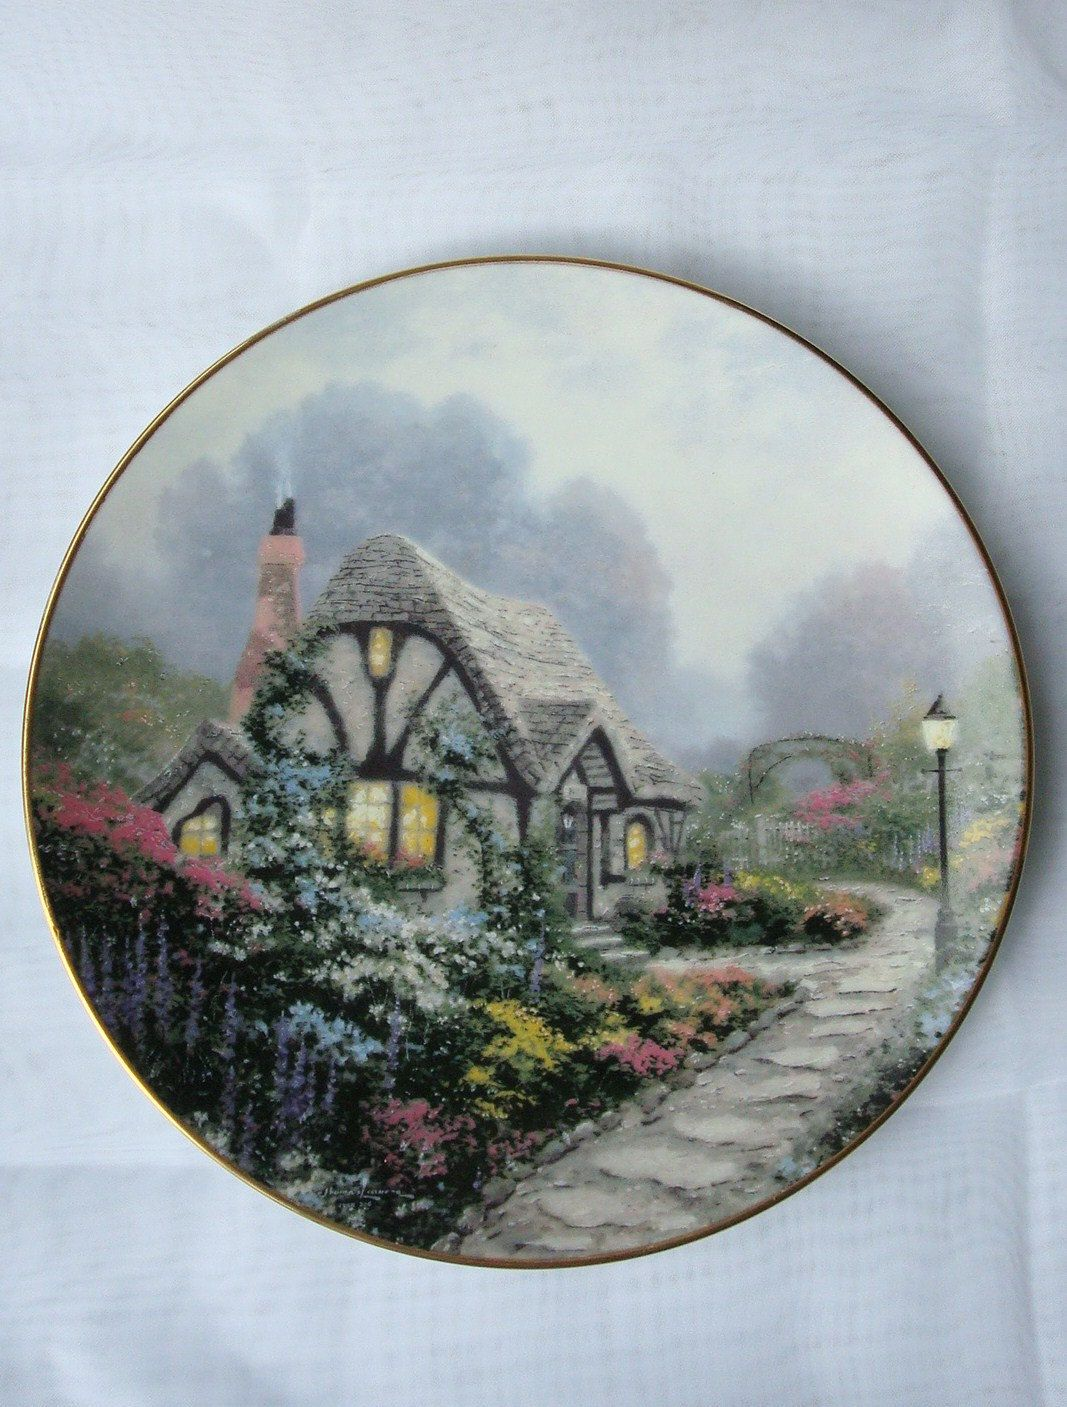 Chandleru0027s Cottage by Thomas Kinkade Limited Edition Collector Plate by Edwin M Knowels 1991- & Chandleru0027s Cottage by Thomas Kinkade Limited Edition Collector Plate ...